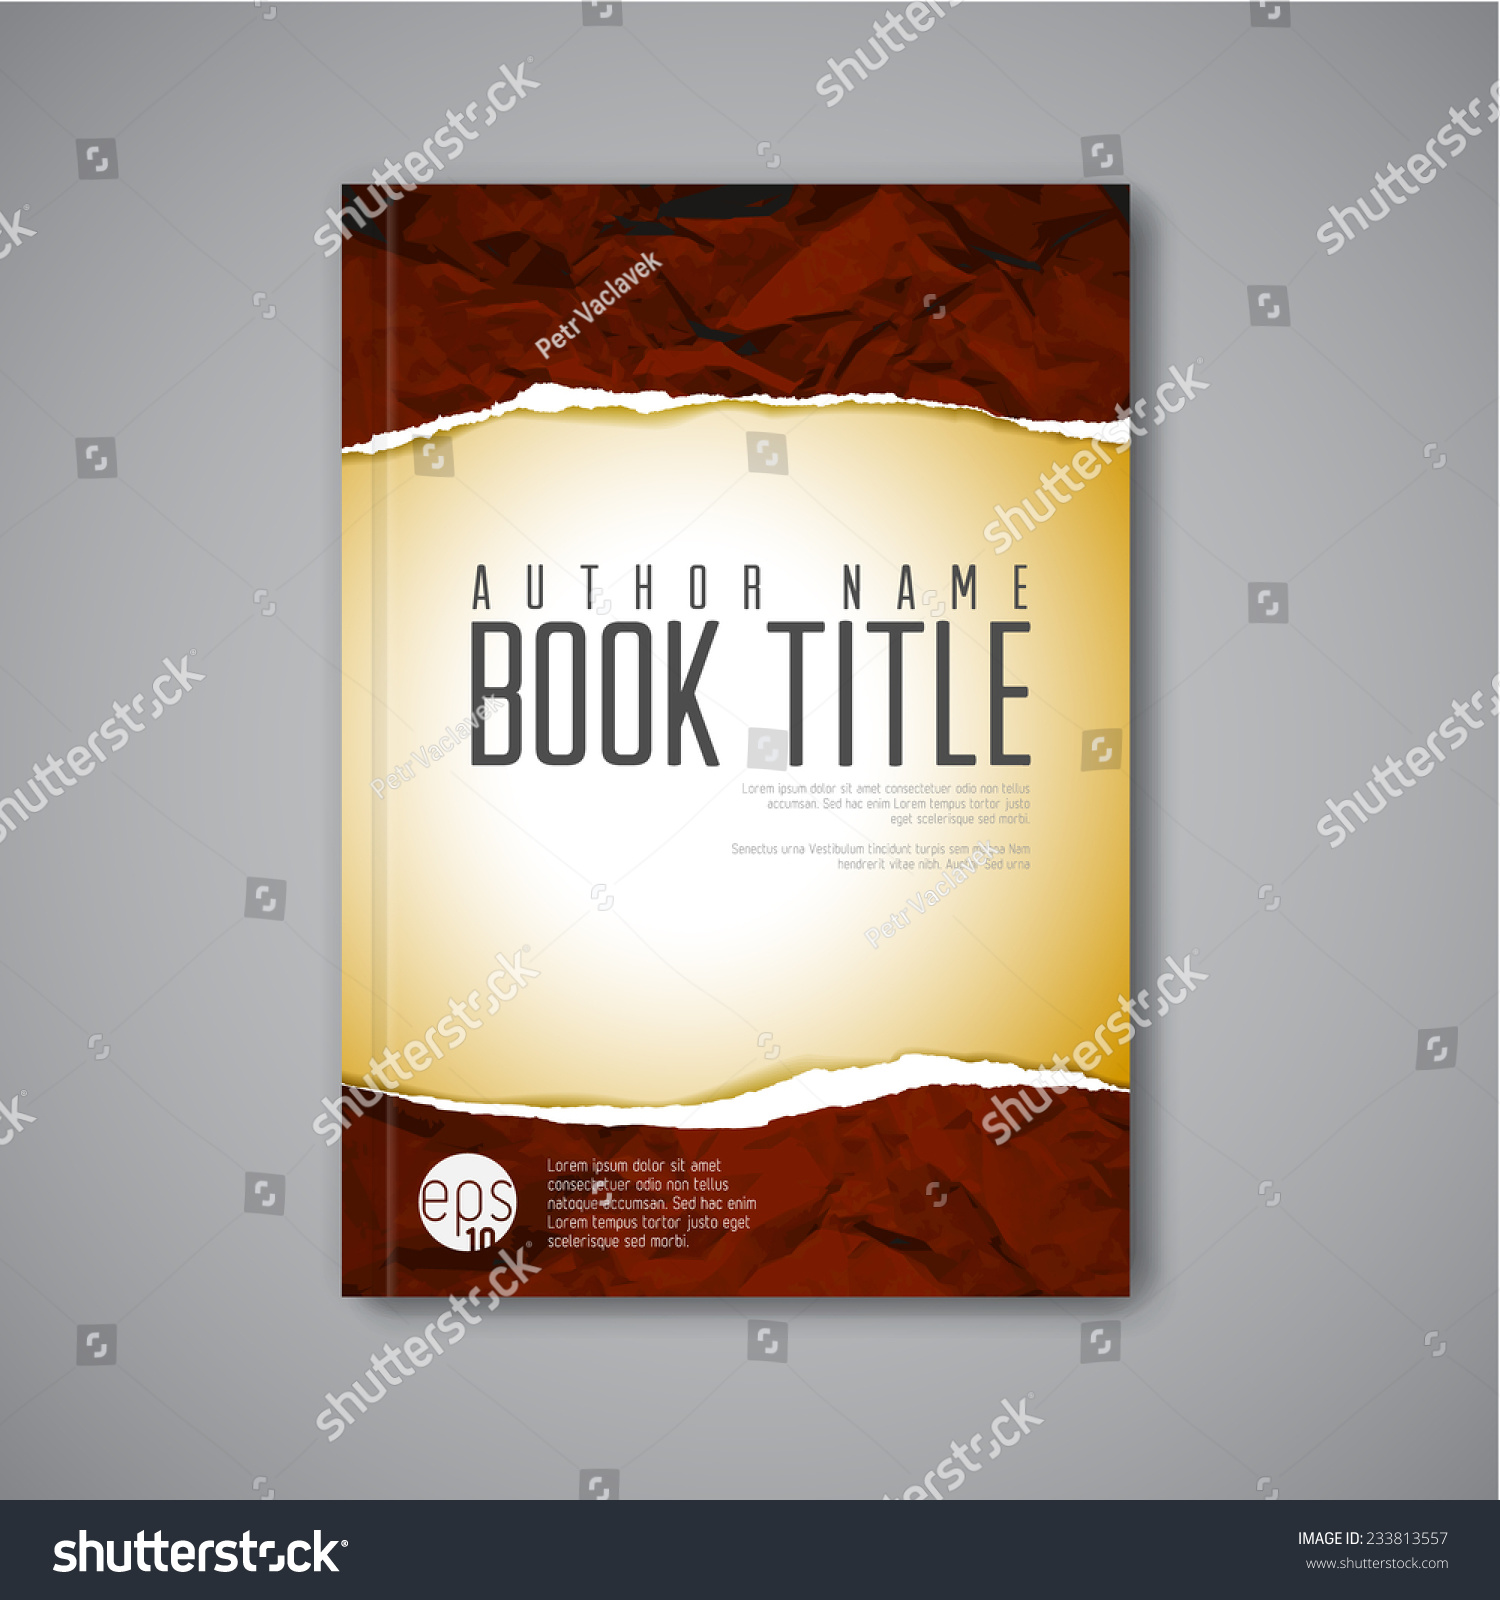 Abstract Modern Template Book Cover : Modern vector abstract book cover template with teared